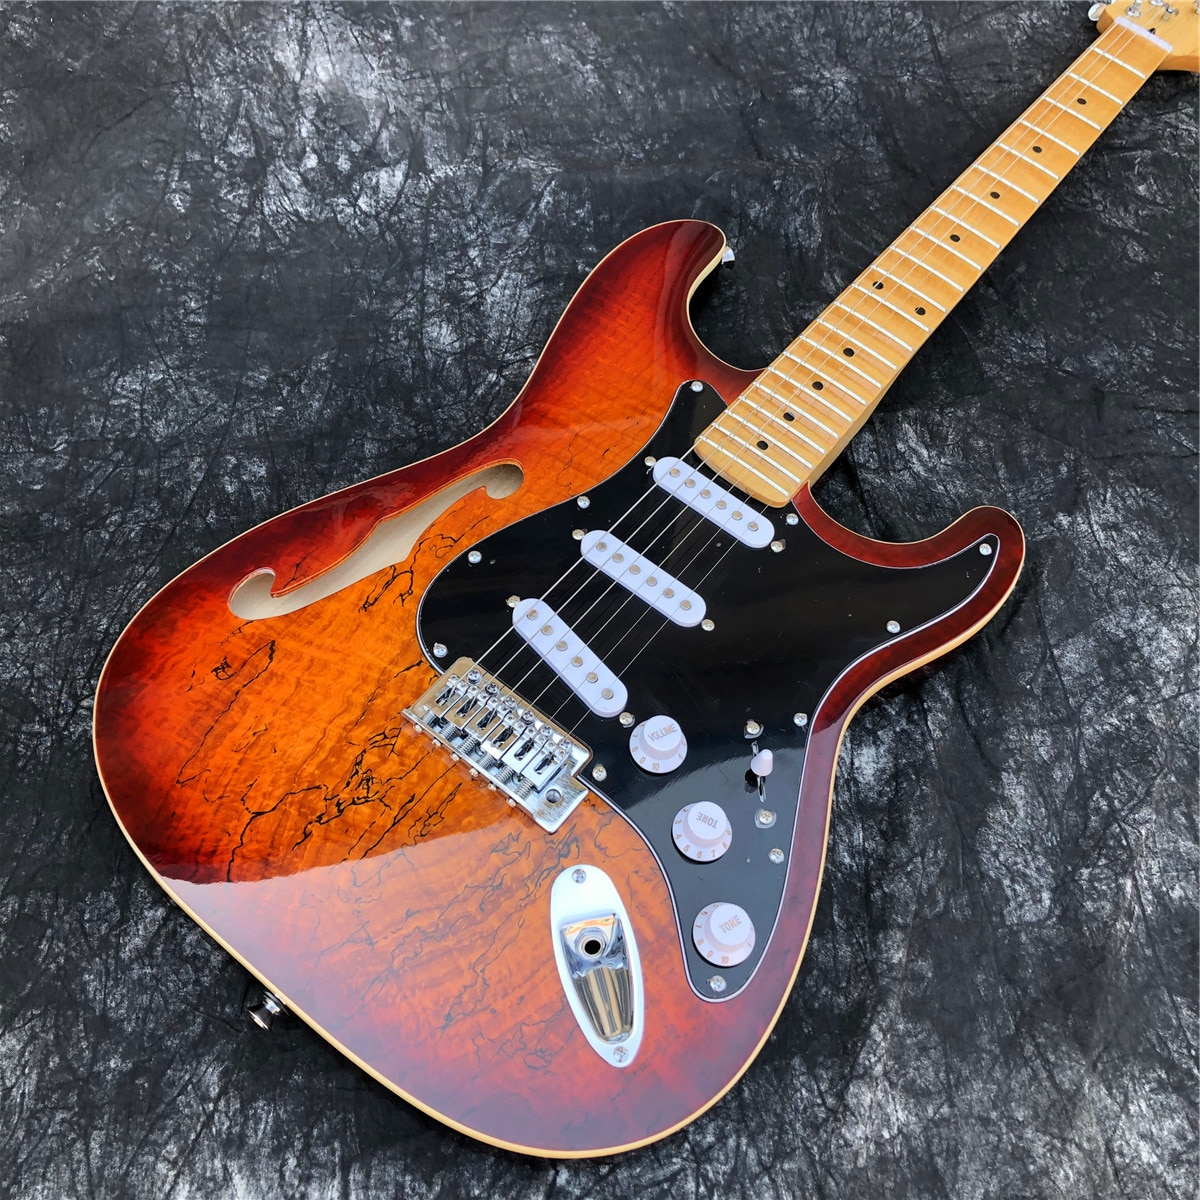 Sunset Color 6 Strings F Holes Maple Fingerboard ST Electric Guitar,Real Photos,Free Shipping